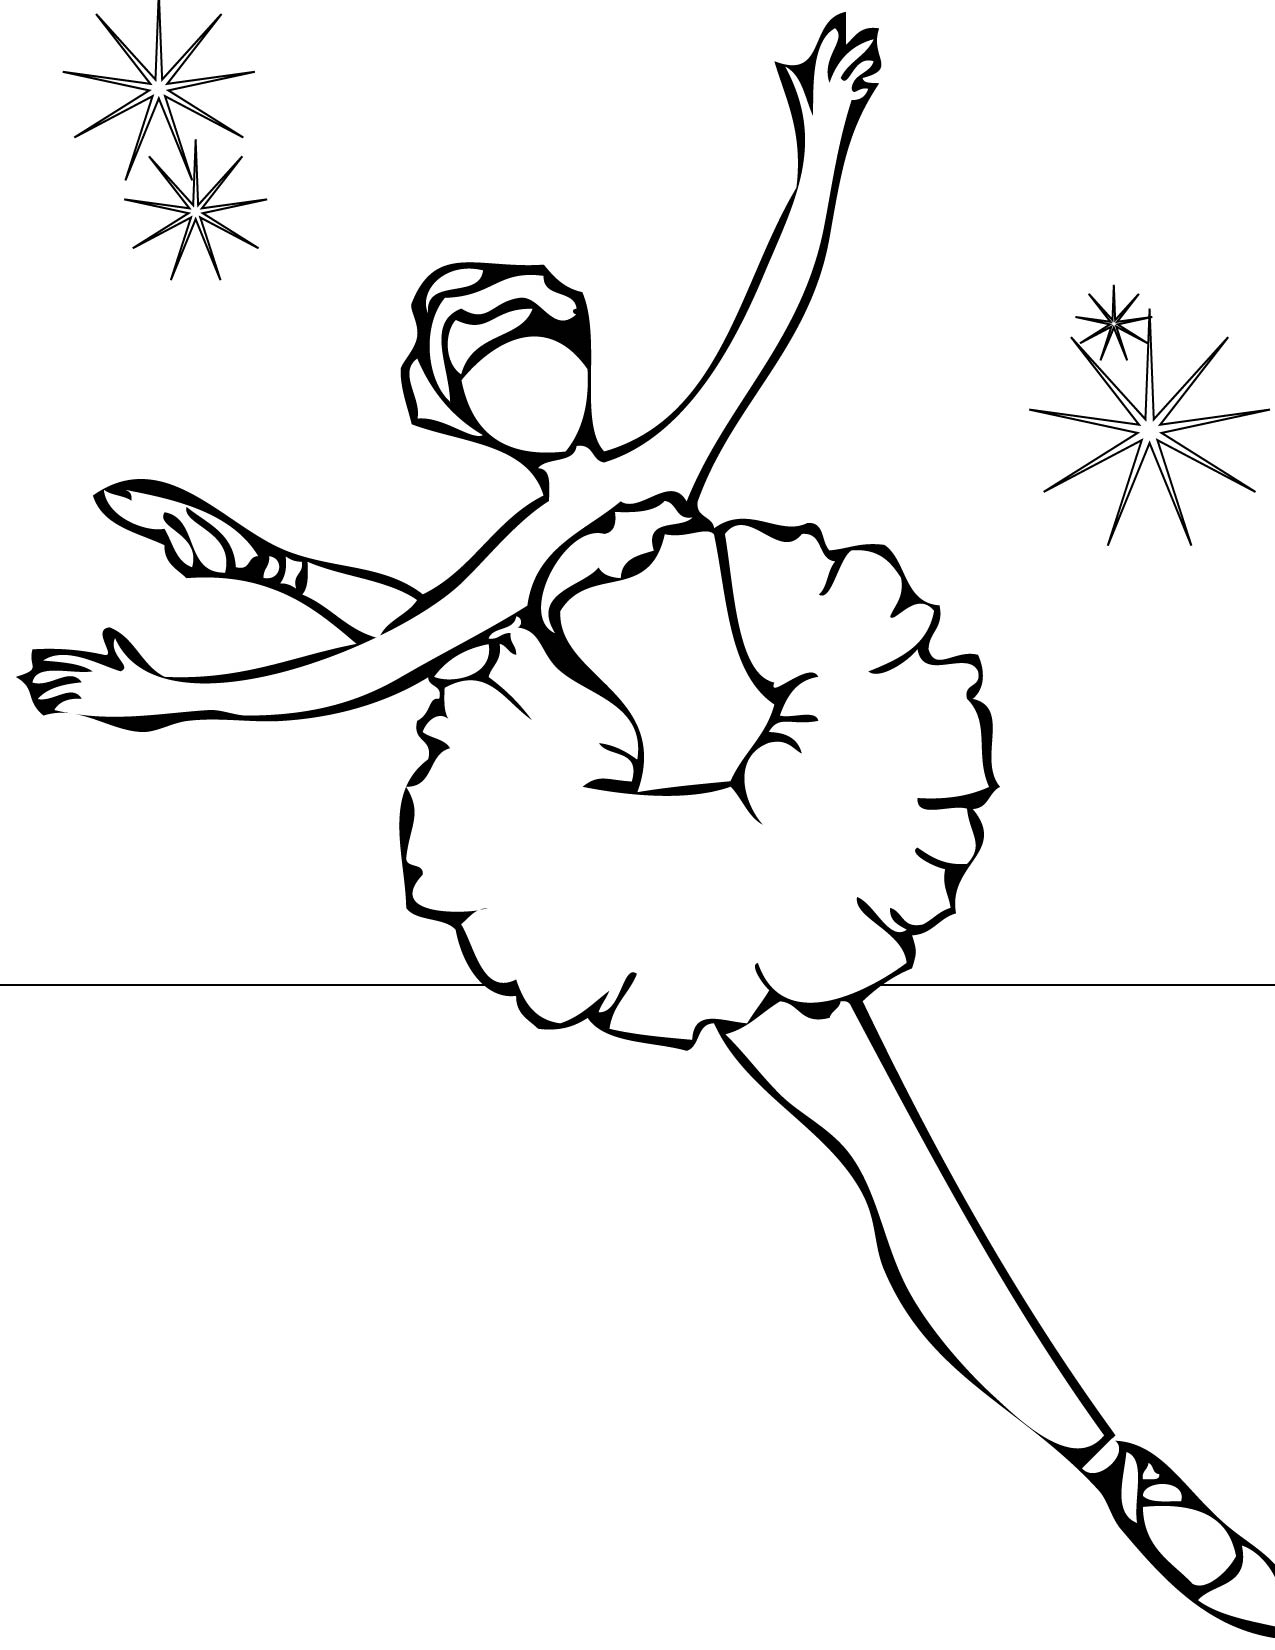 1275x1650 Simple Cxquc In Ballerina Coloring Pages On With Hd Resolution